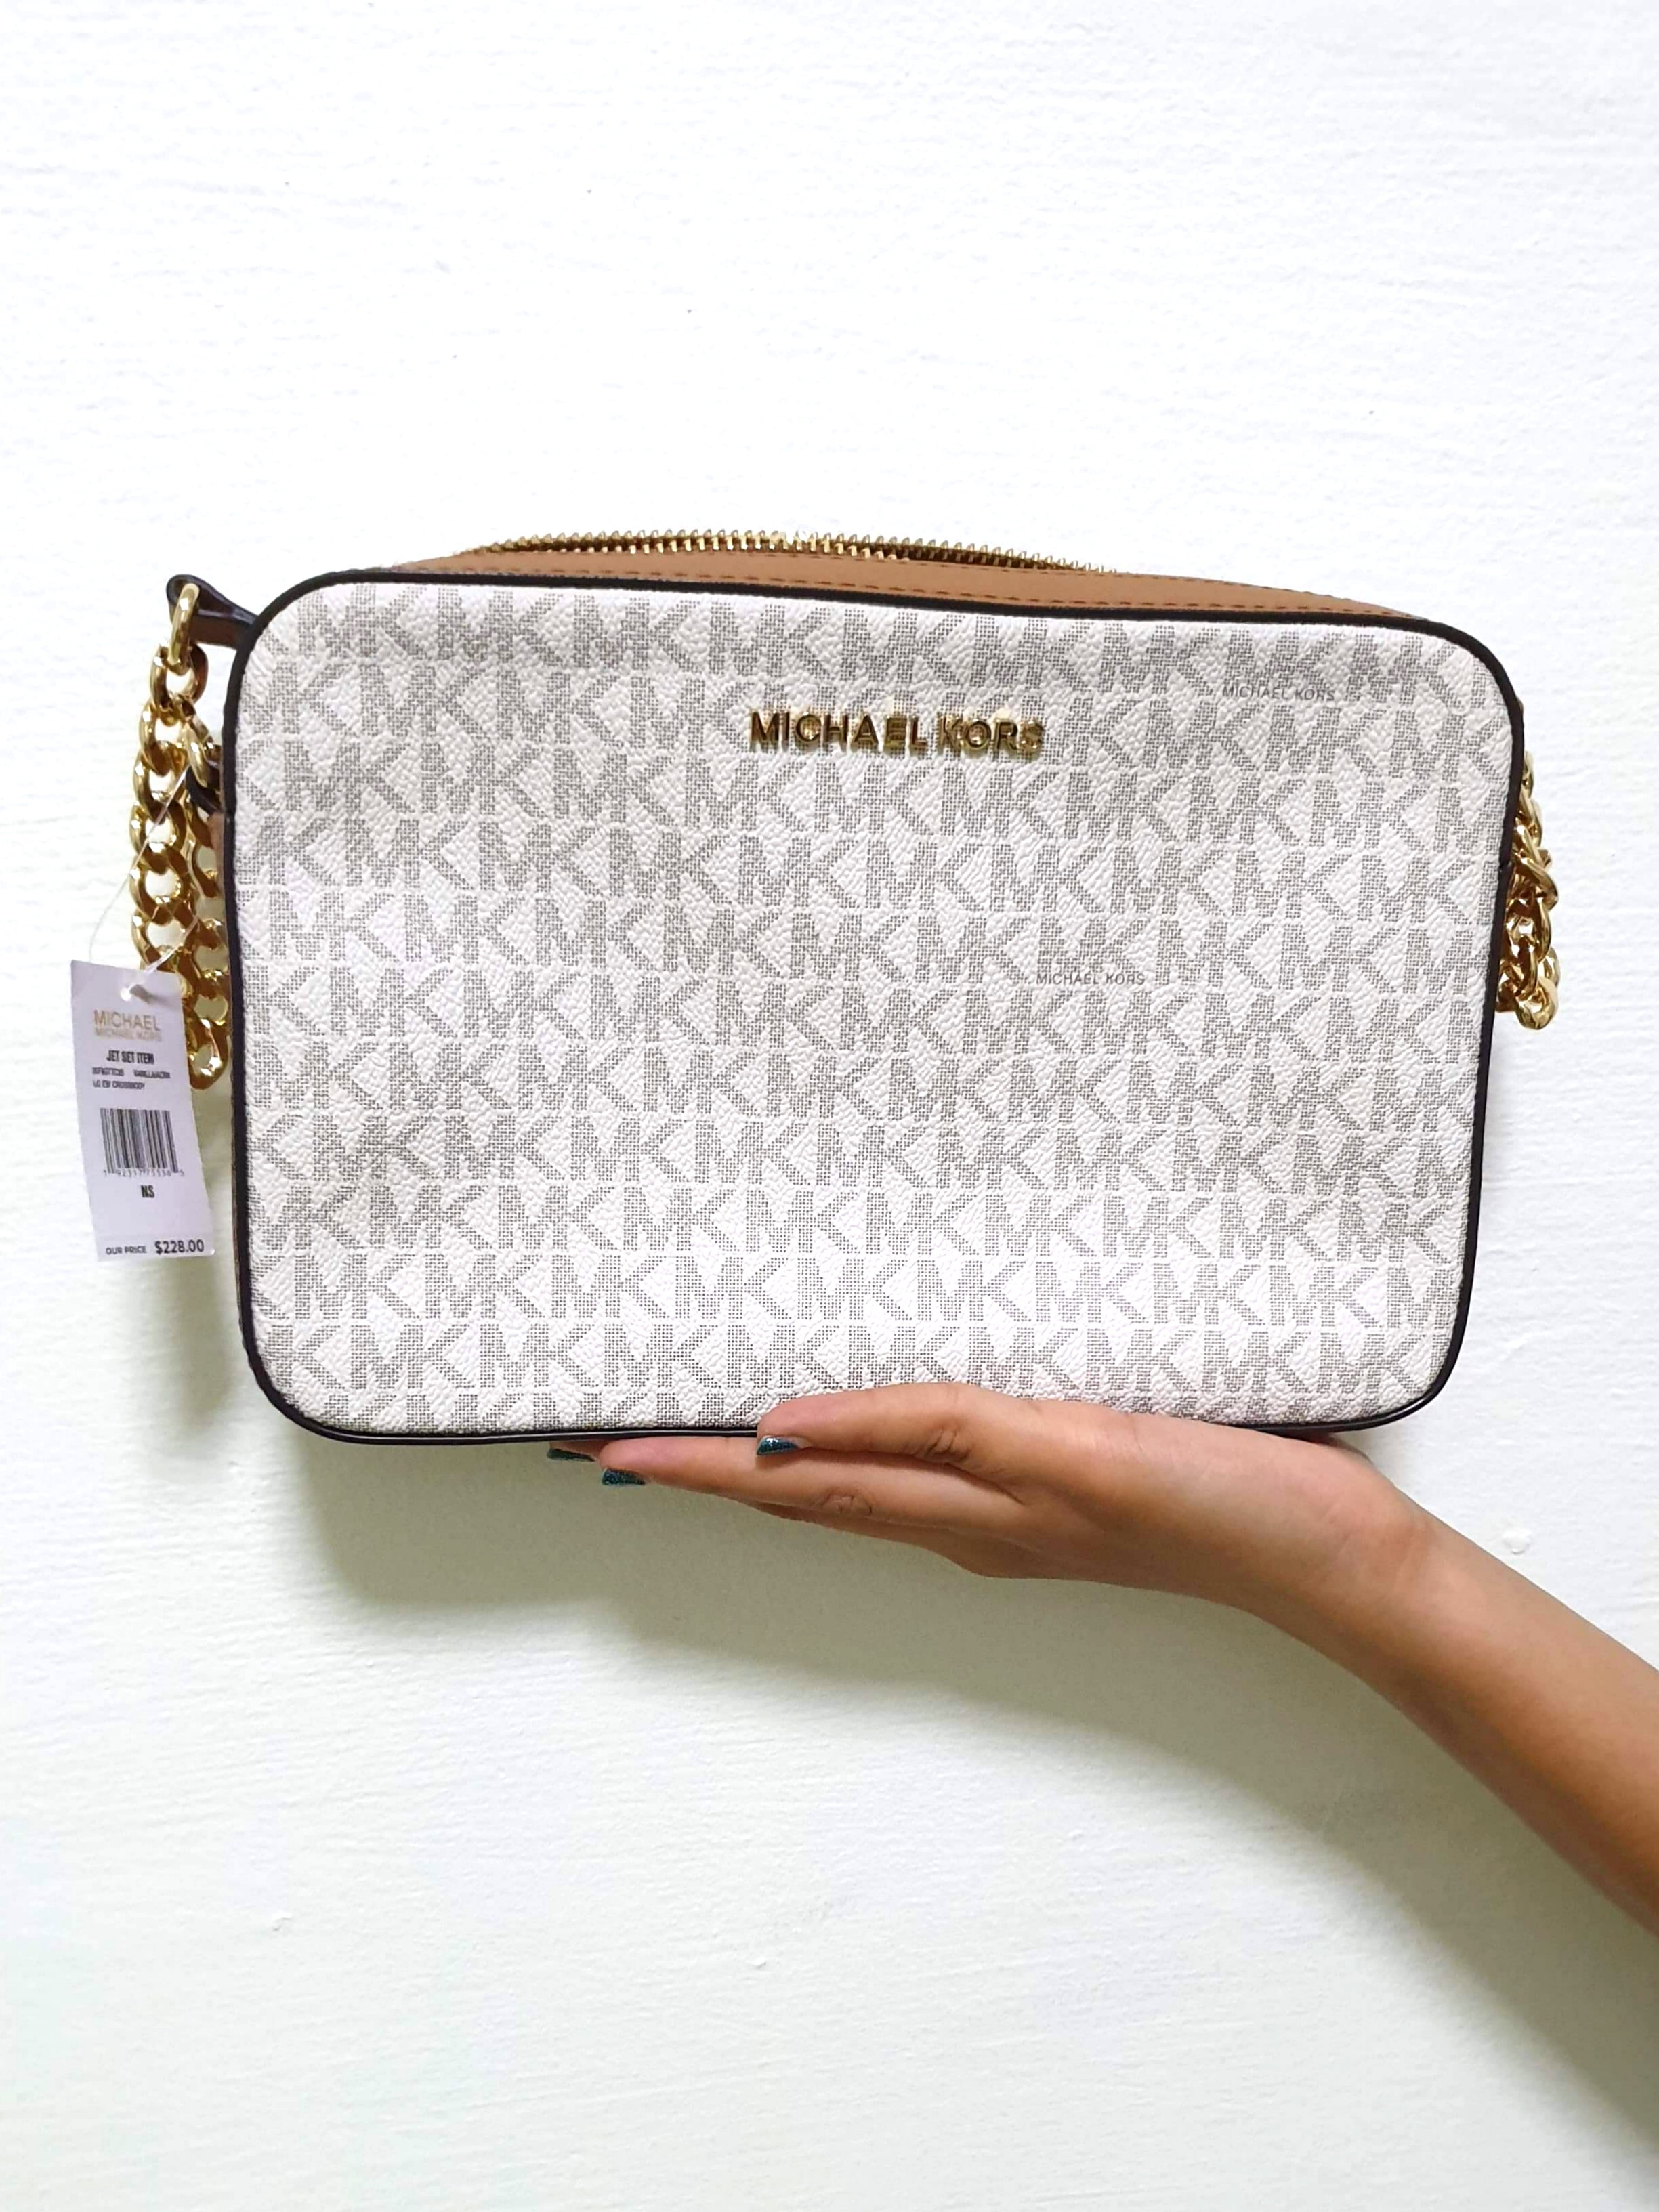 7bcd49d03d81 BN Authentic Michael Kors LG EW Crossbody (Vanilla)